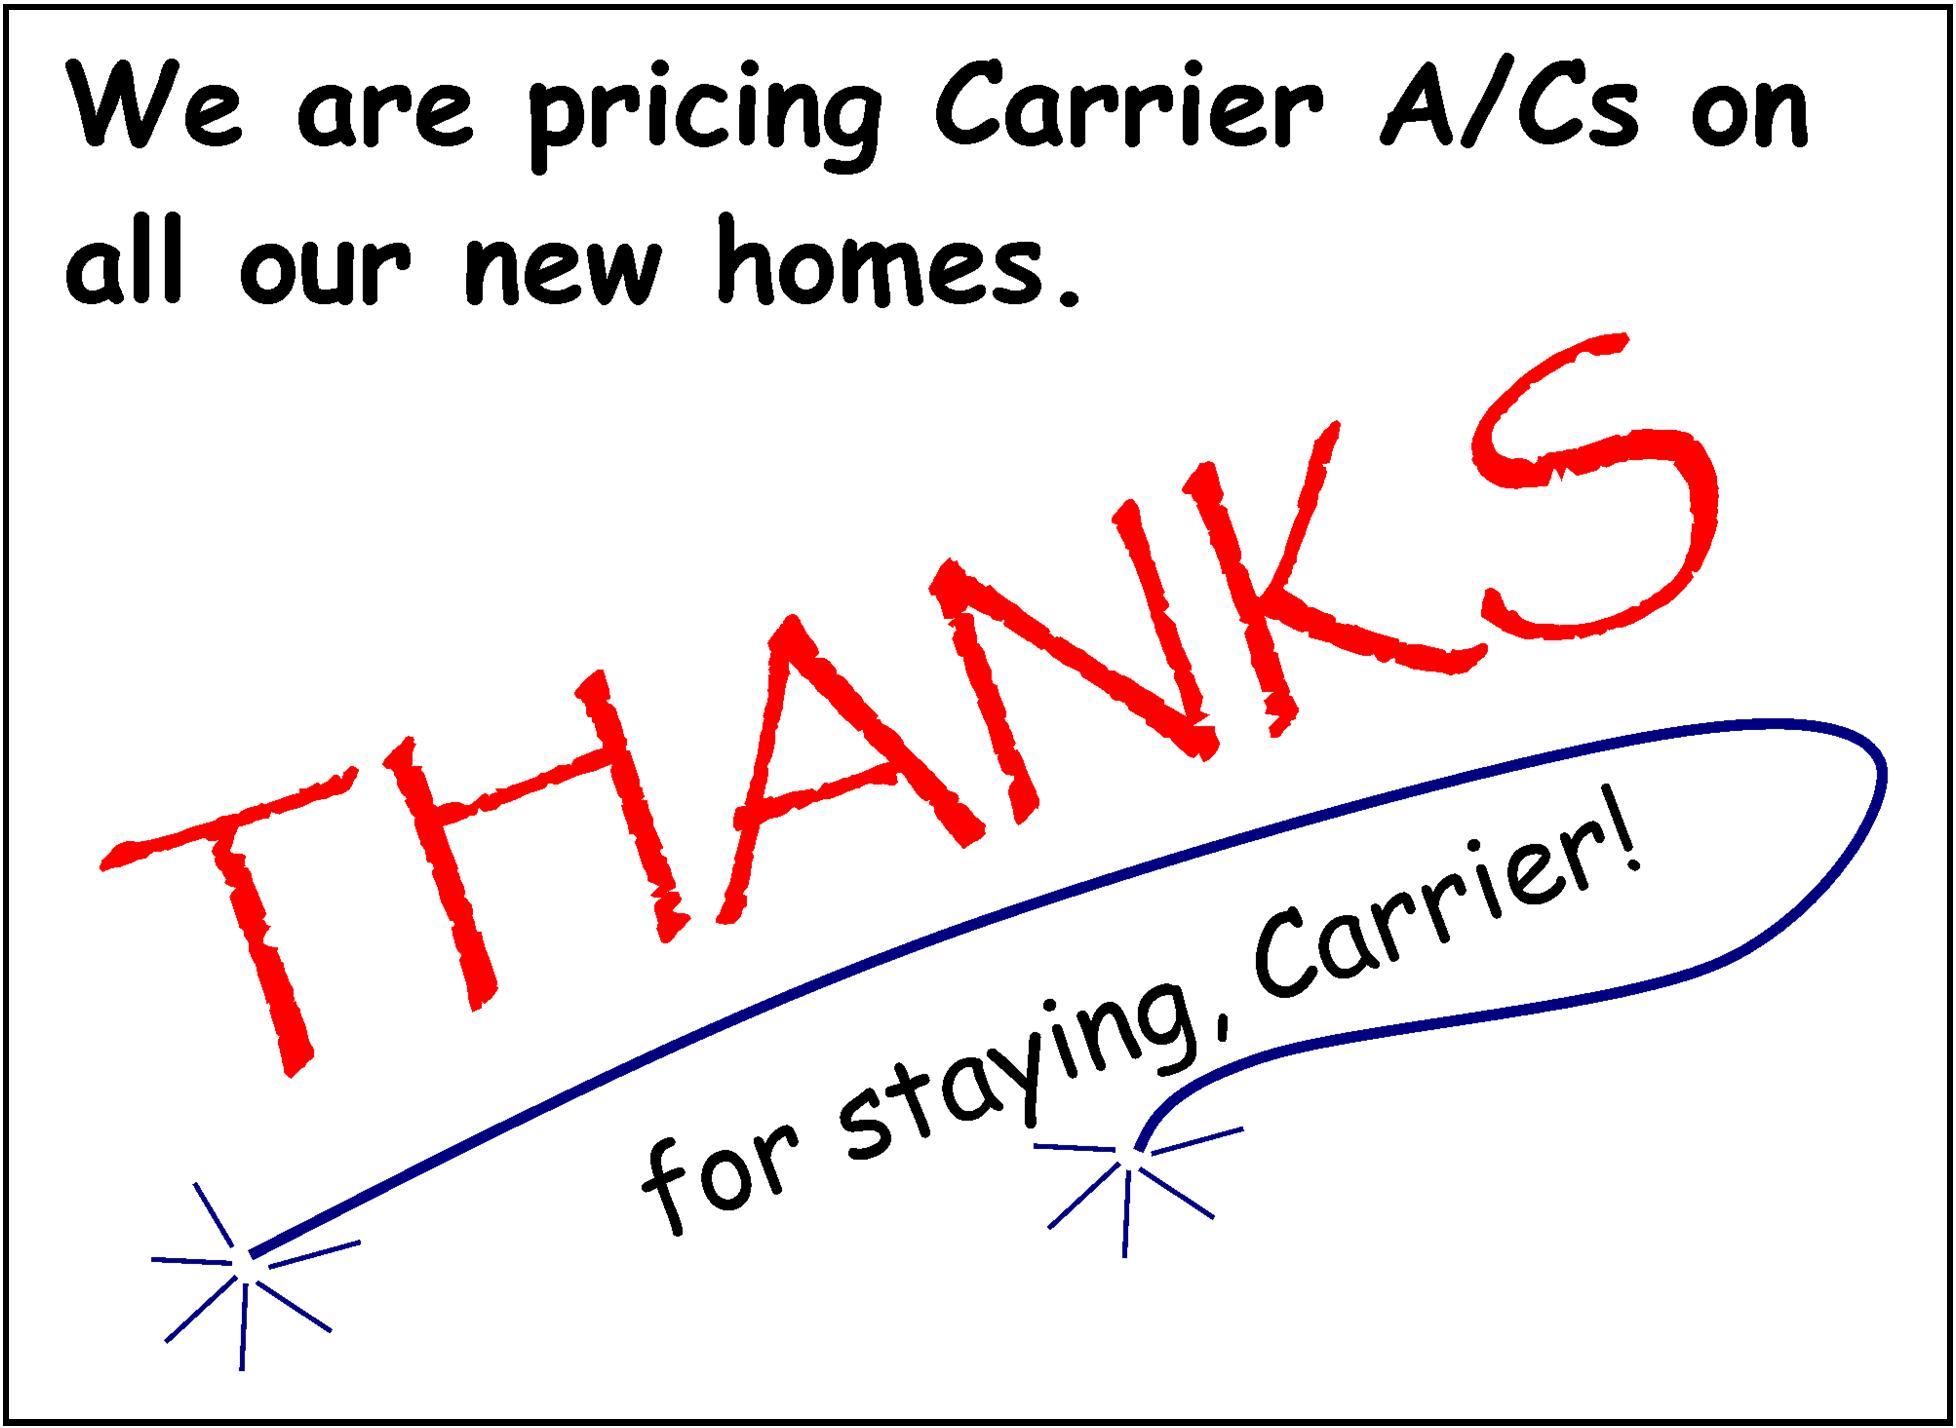 Thanks for staying, Carrier!